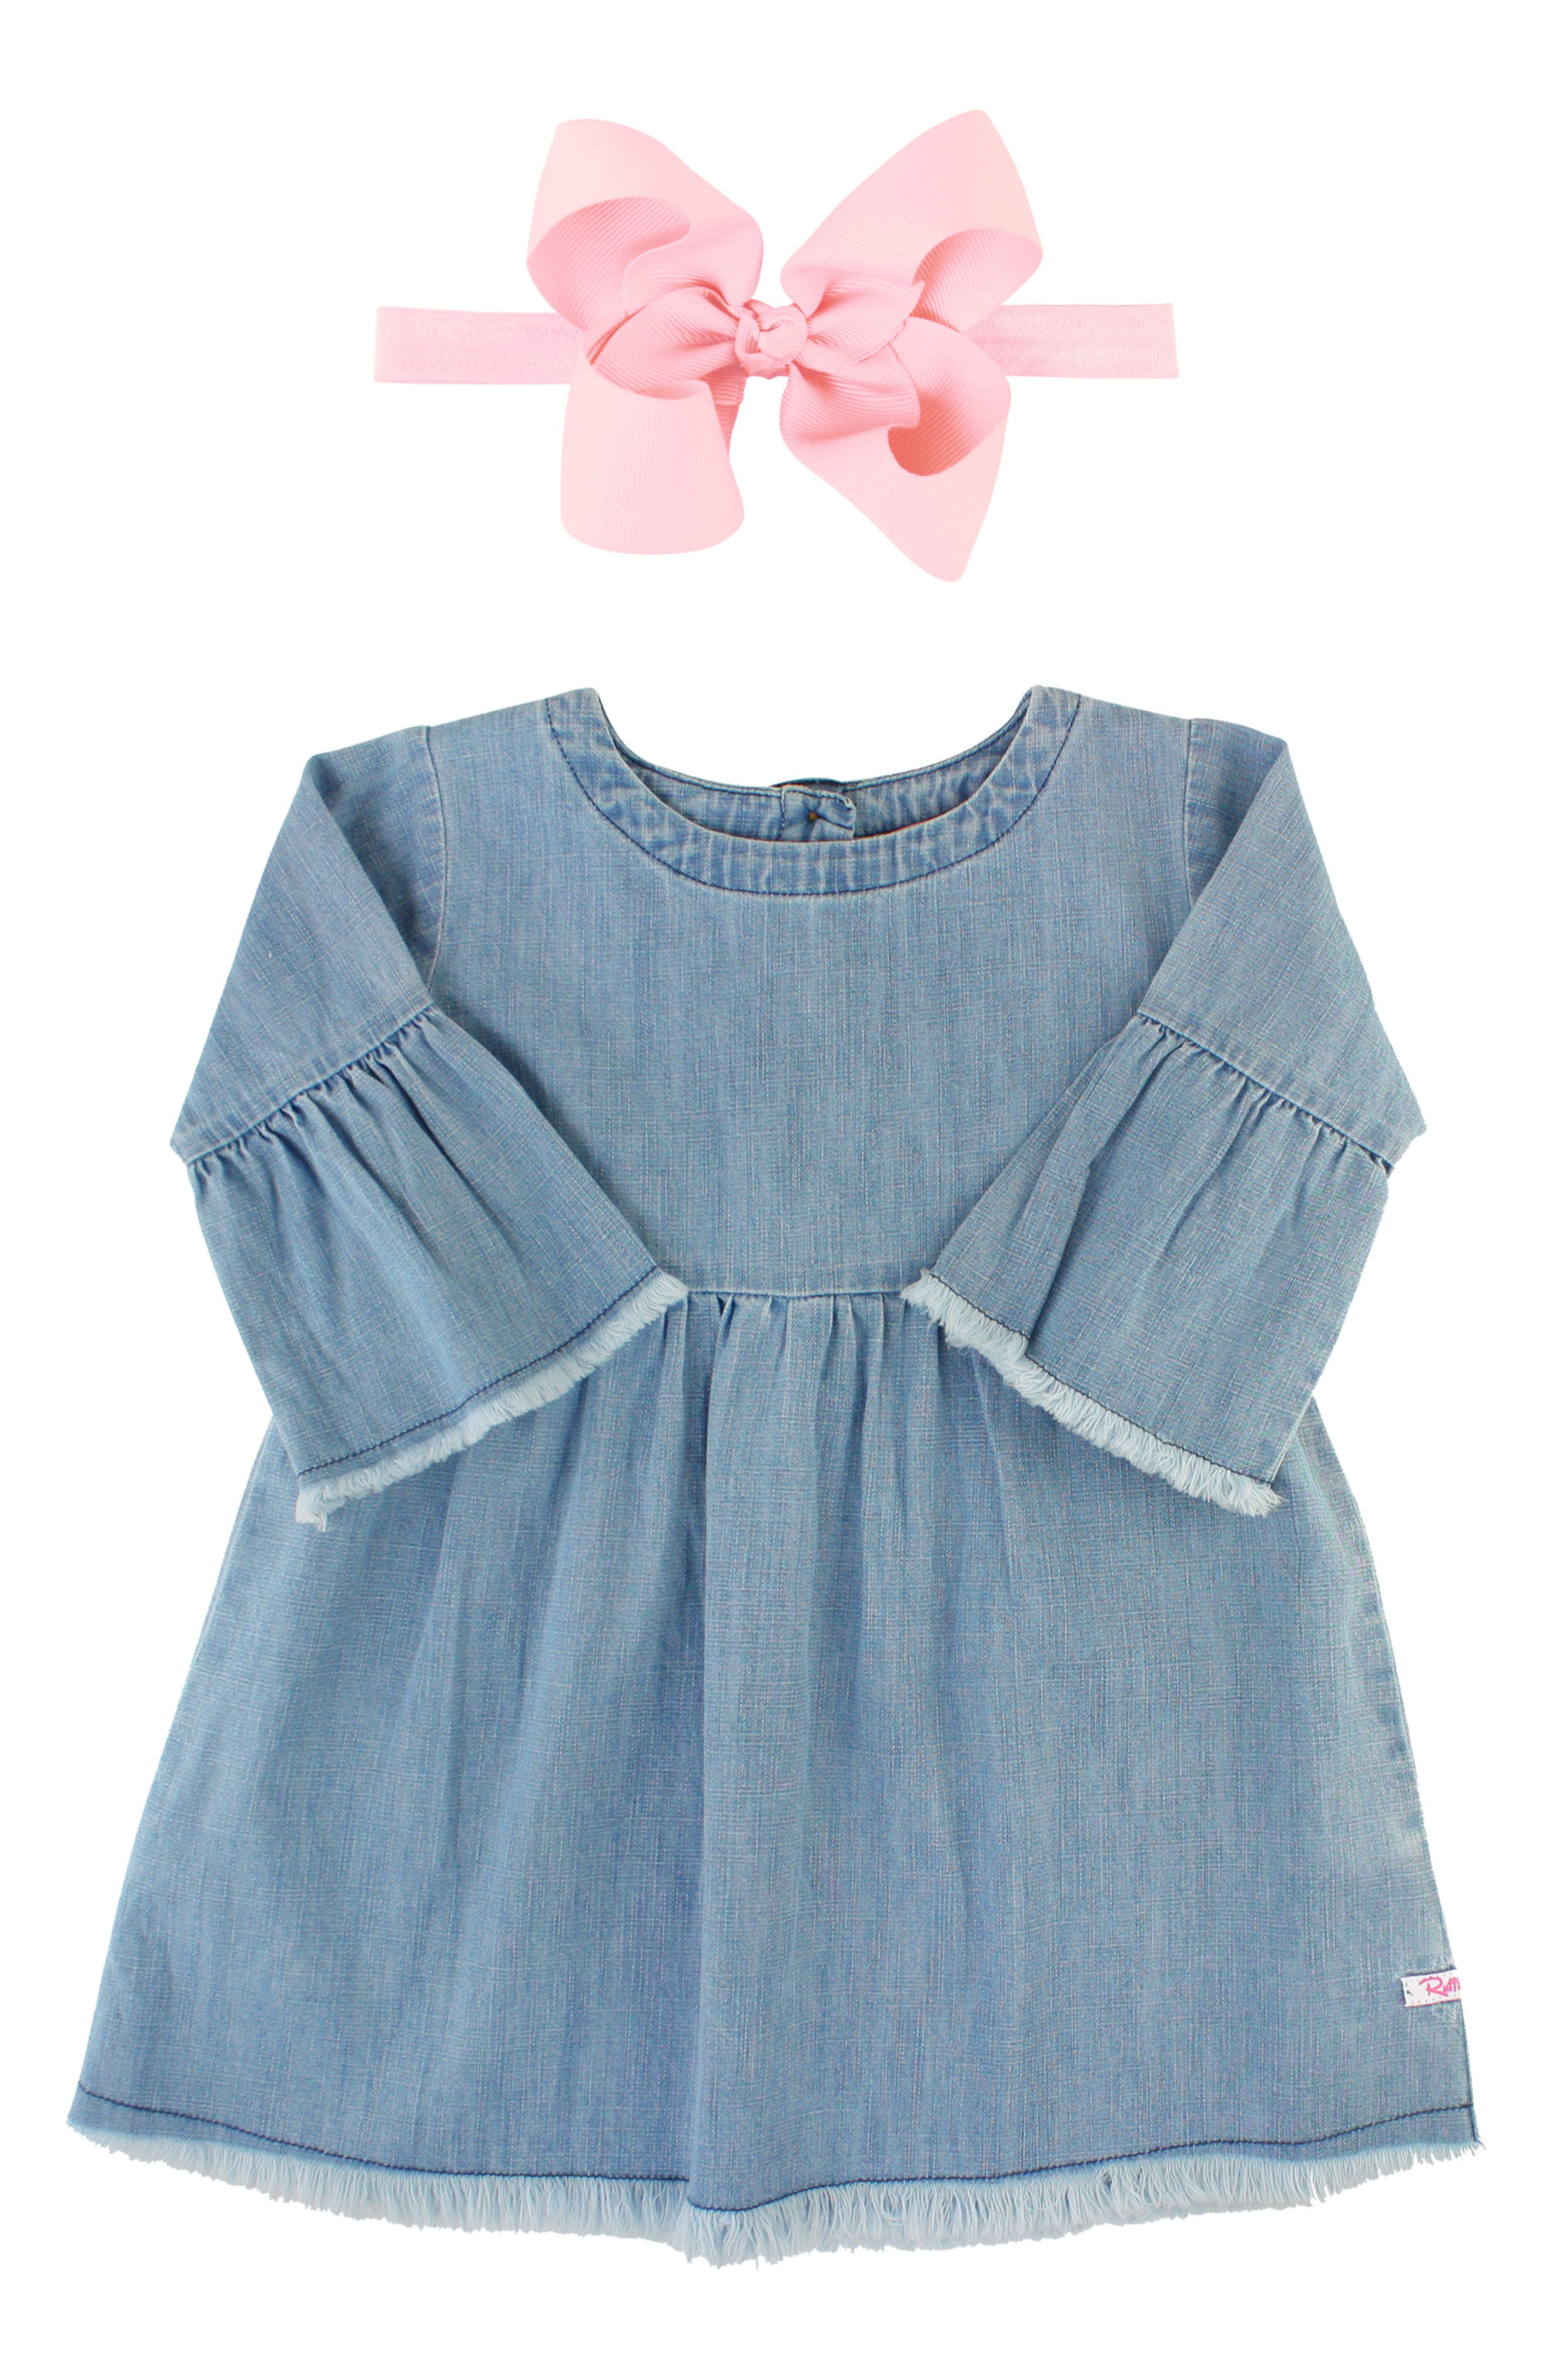 Fraying at the hem and flared cuffs add an on-trend deconstructed vibe to a sweet chambray dress paired with a too-cute grosgrain-bow headband. Style Name: Rufflebutts Chambray Dress & Bow Head Wrap Set (Baby). Style Number: 5828453. Available in stores.